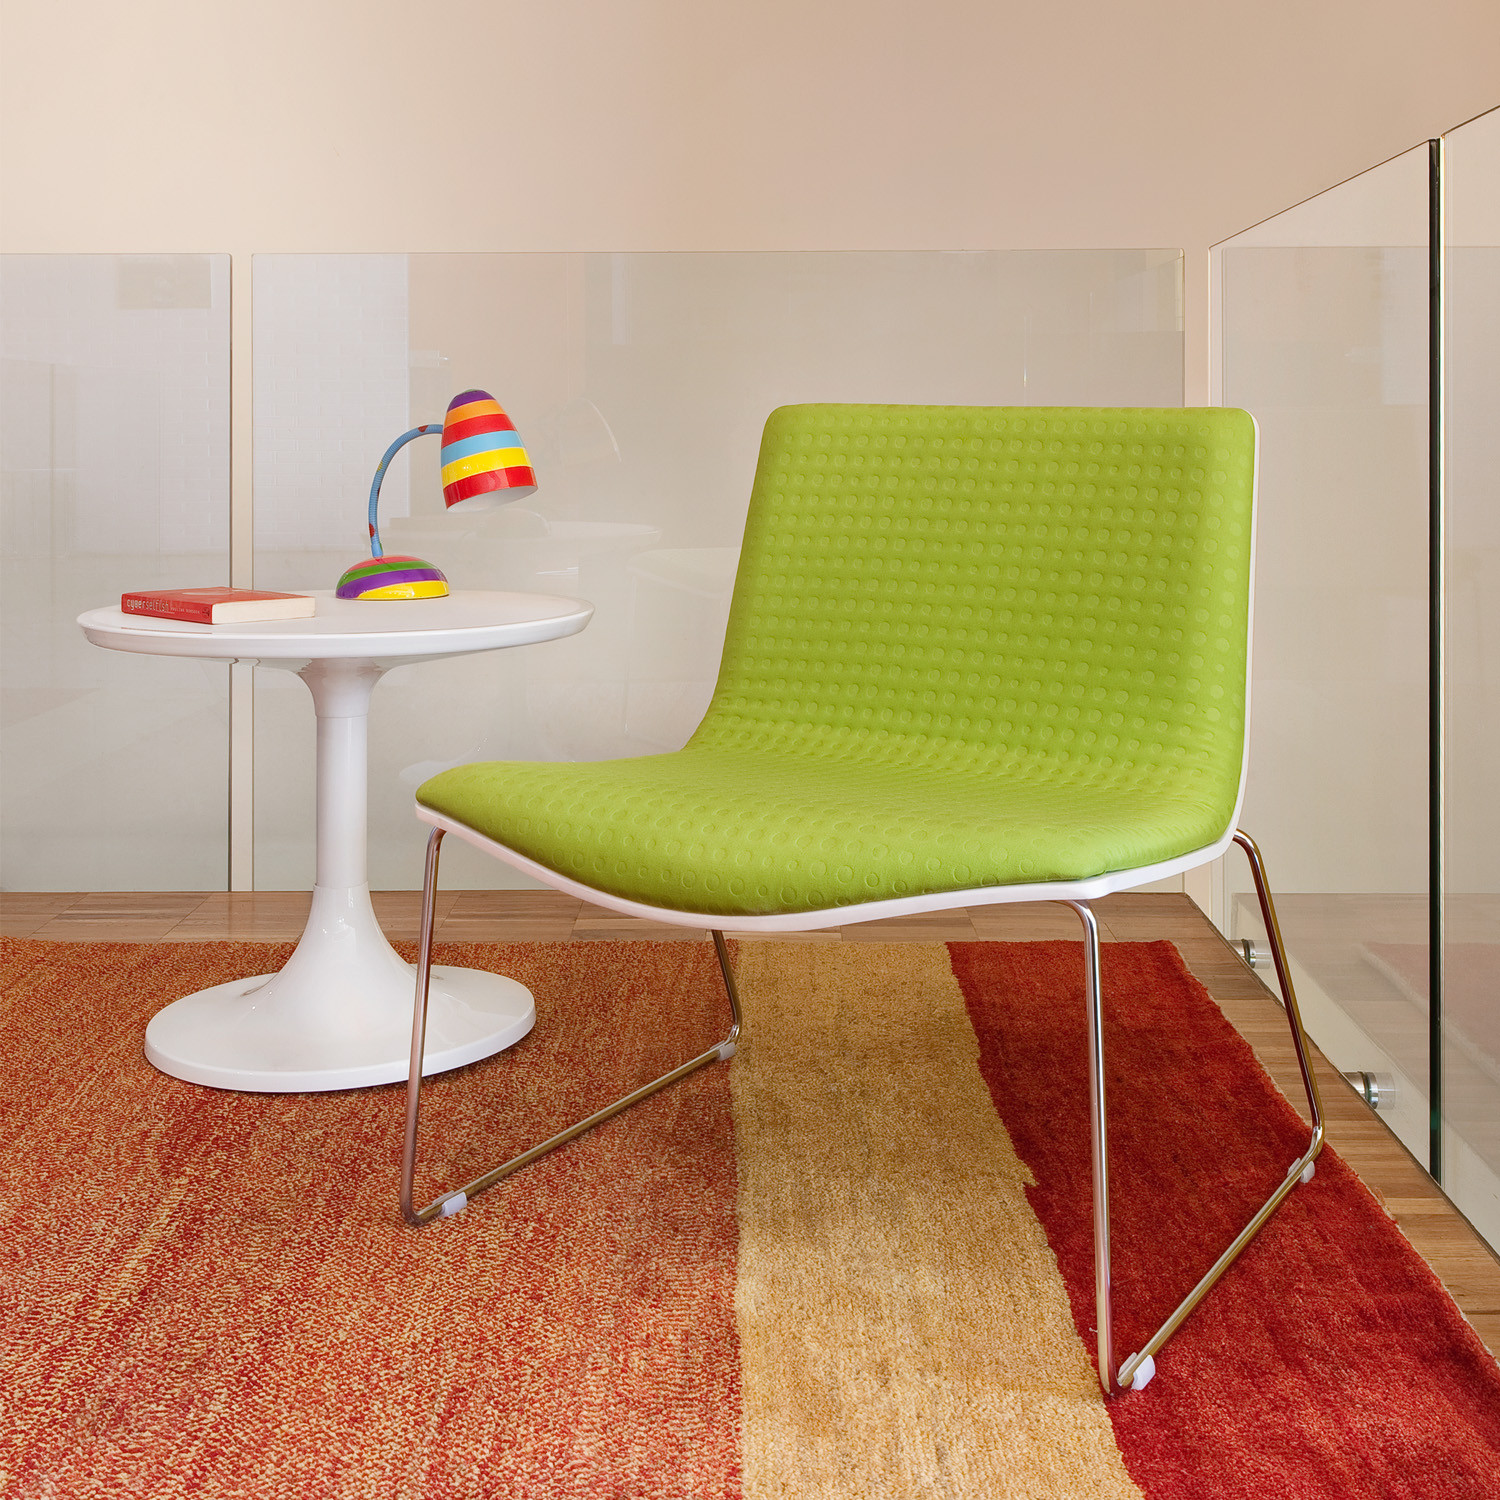 Amarcord Lounge Seating